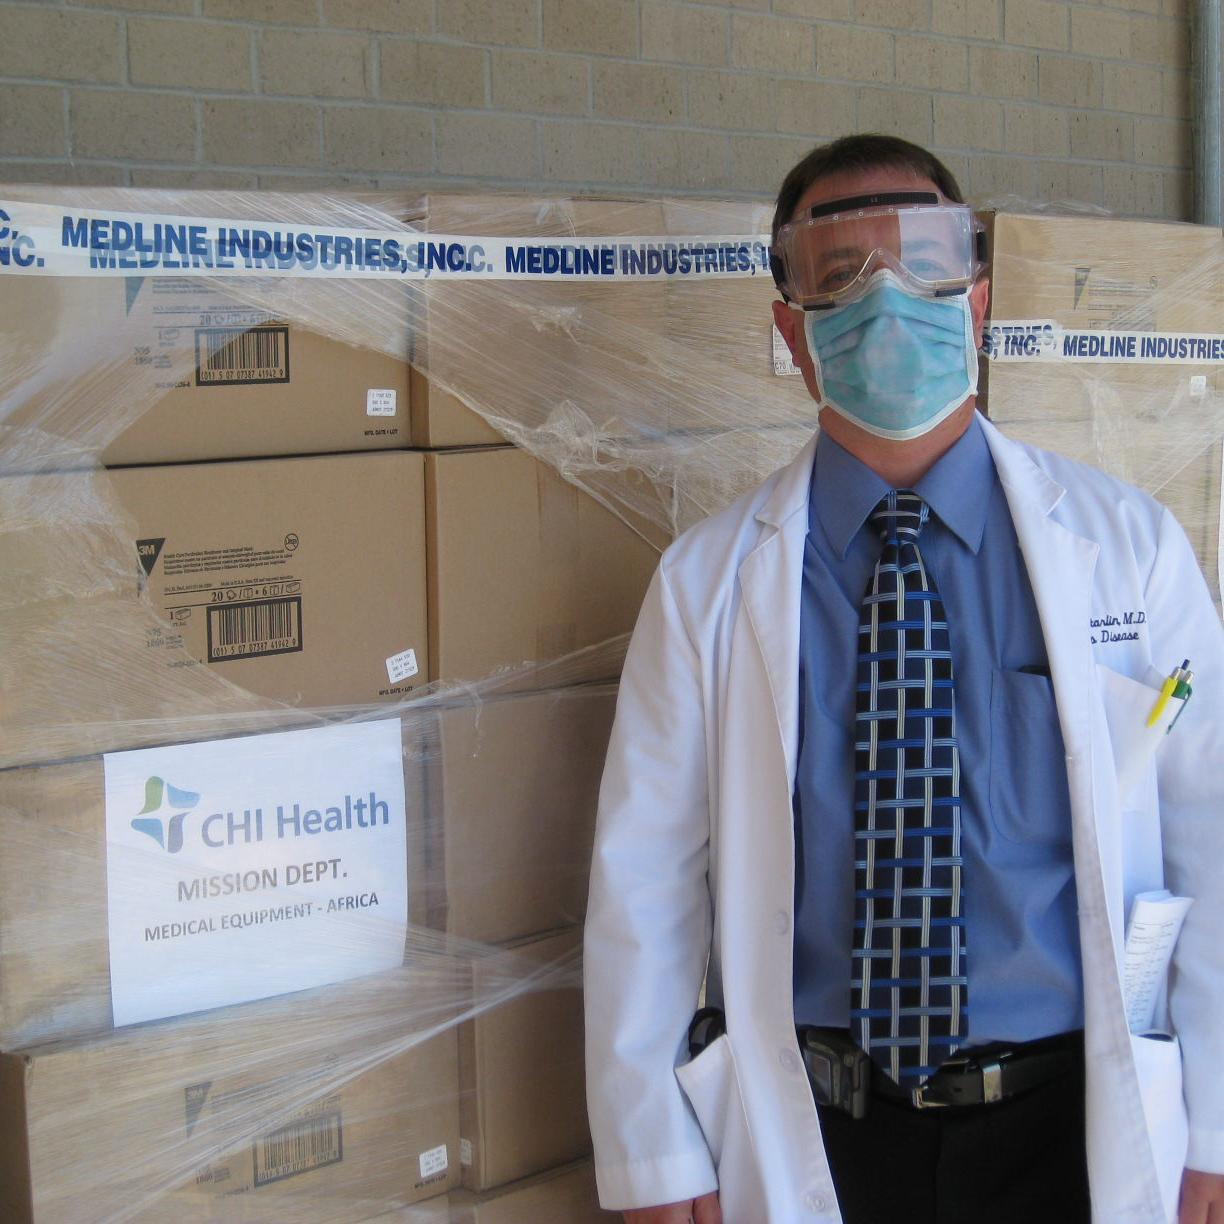 CHI Health donating medical supplies to help fight Ebola | Health